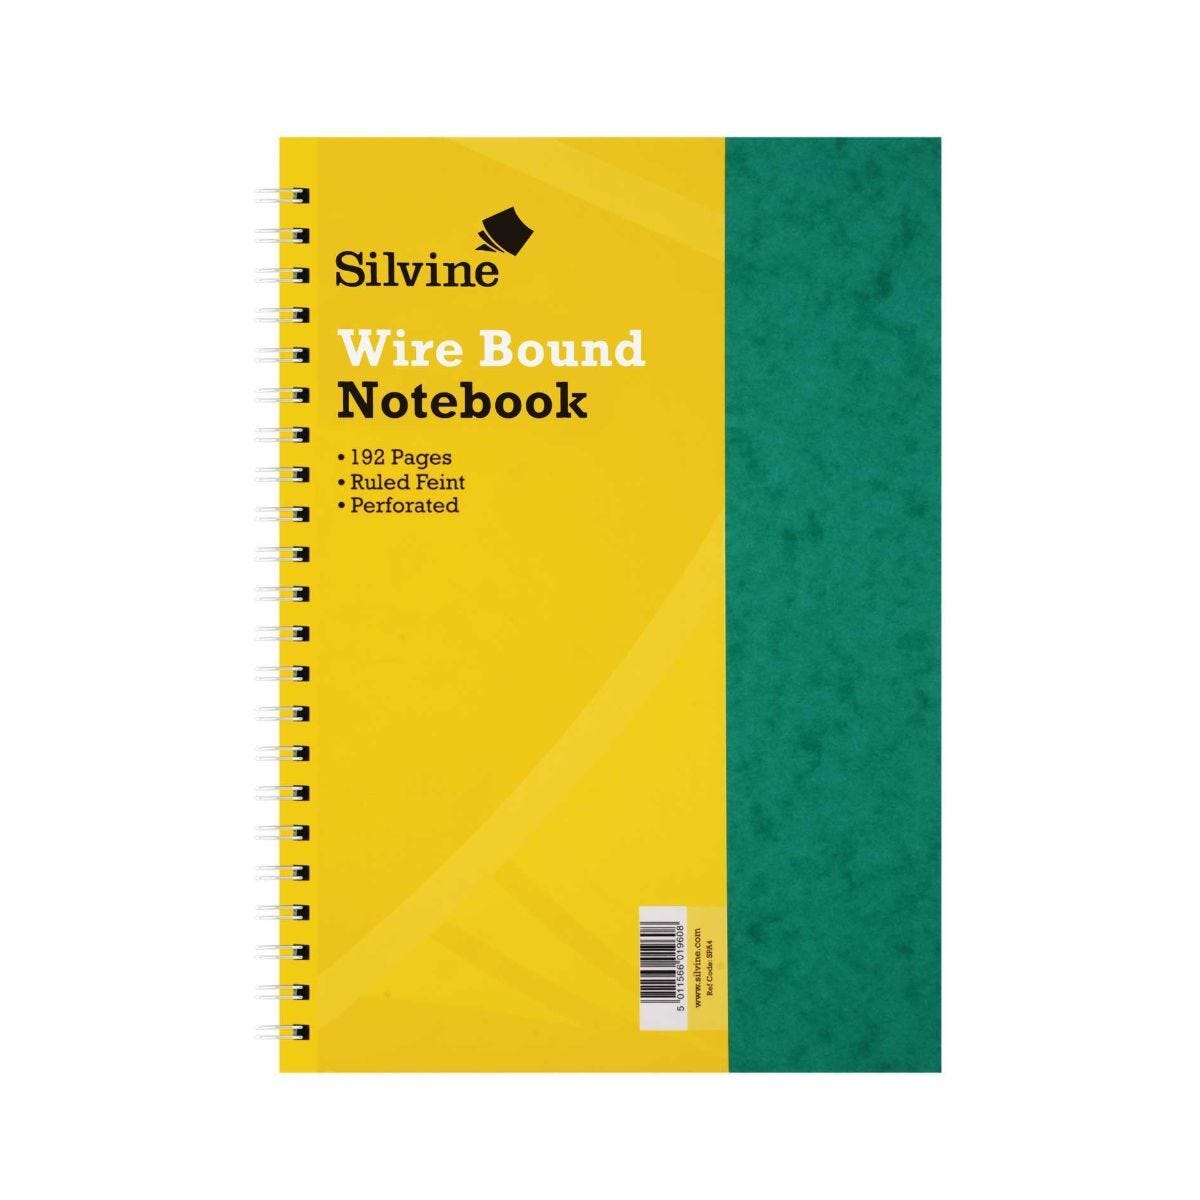 Silvine Notebook Twin Wire Stiff Press Board Pack of 6 A4 75gsm 192 Pages